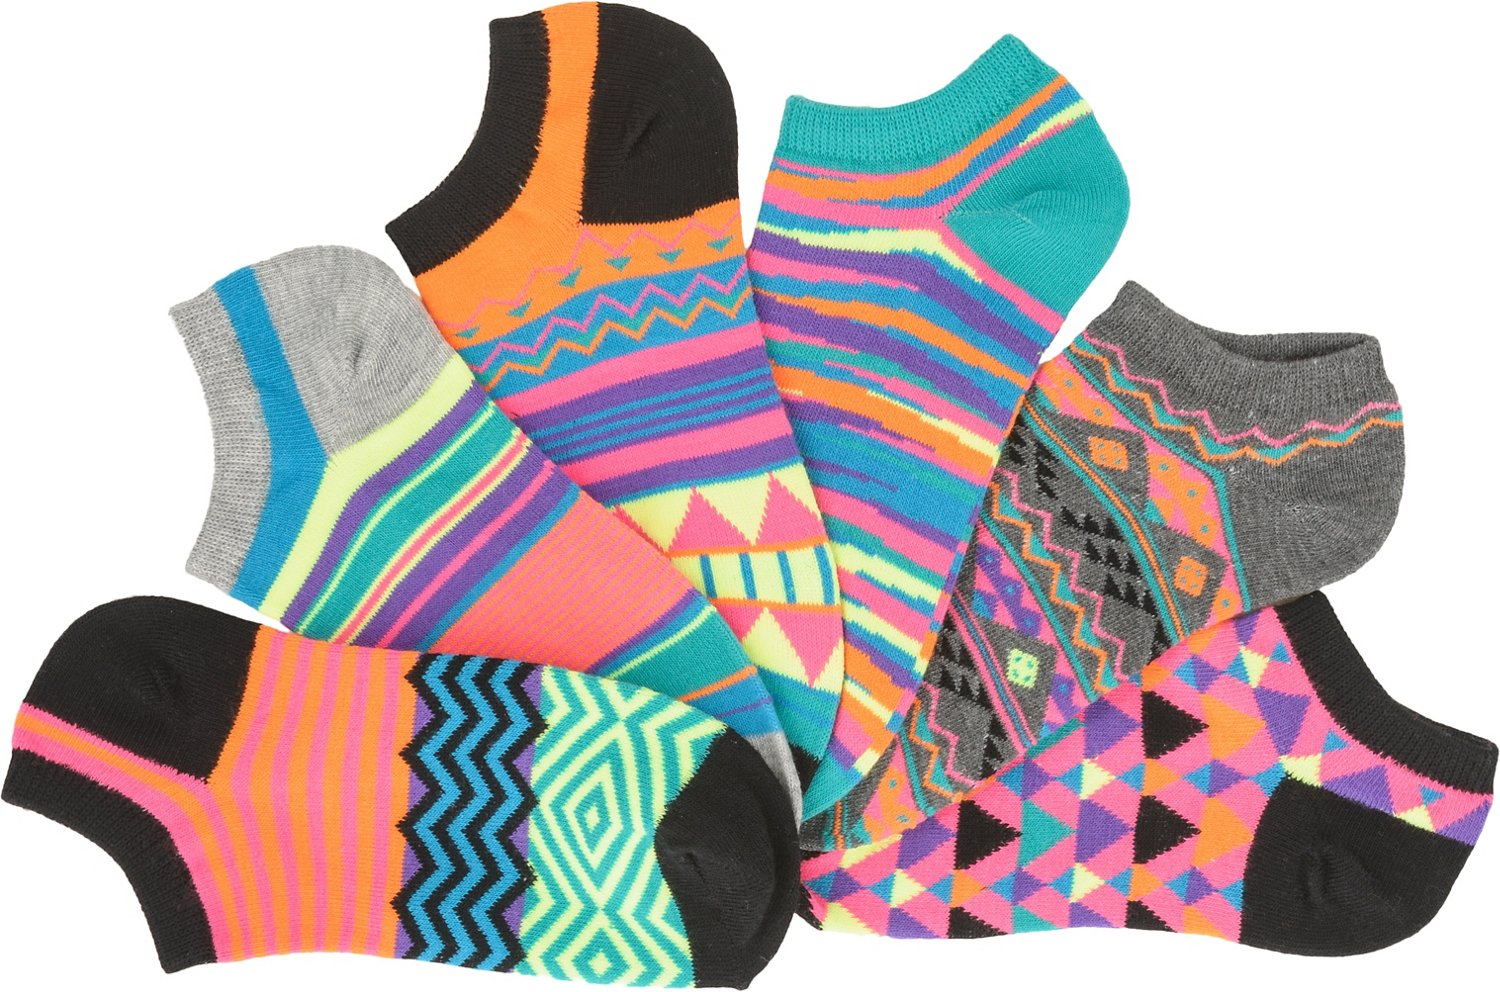 BCG Women's Aztec Assorted Pattern Ankle Socks 6 Pack - view number 1